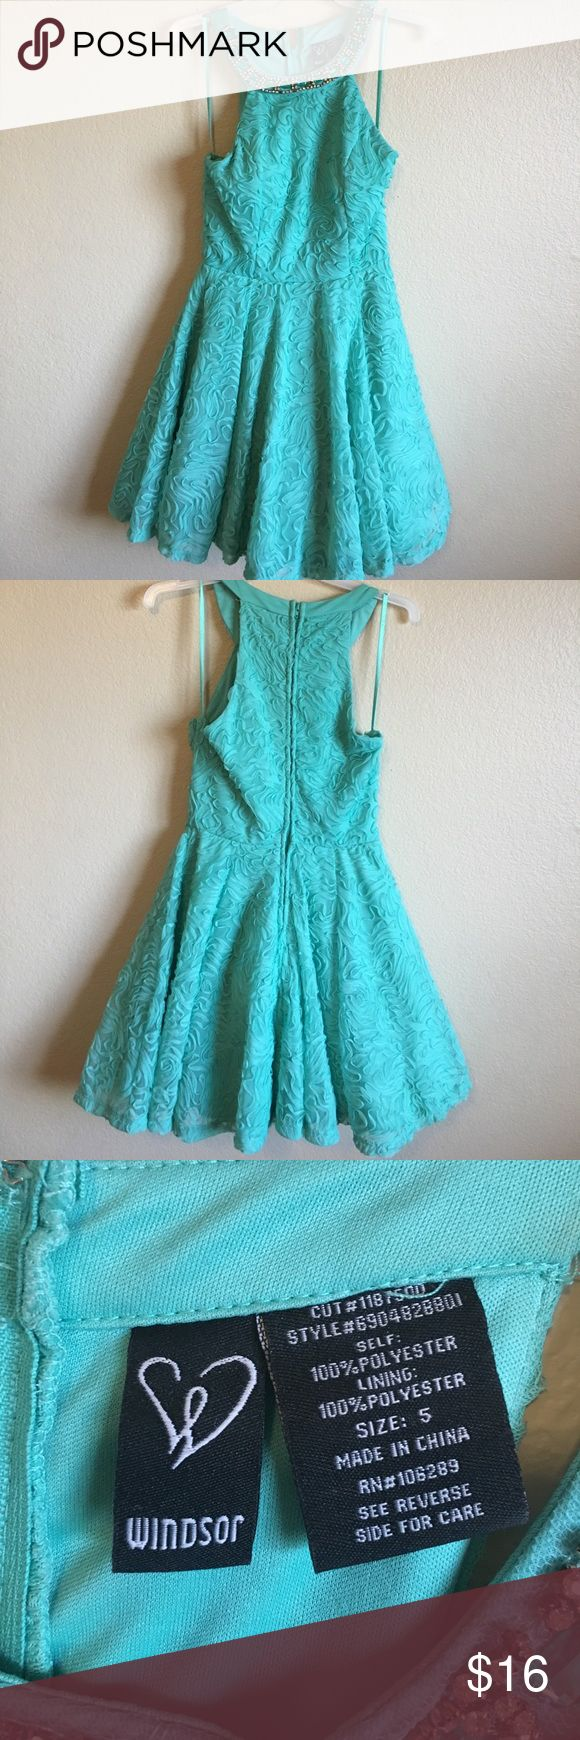 Short turquoise formal dress Short turquoise dress, worn once for winter formal. Super cute and flirty purchased at Windsor. Has a small detaching at zipper(picture shown above). Windsor Dresses Prom